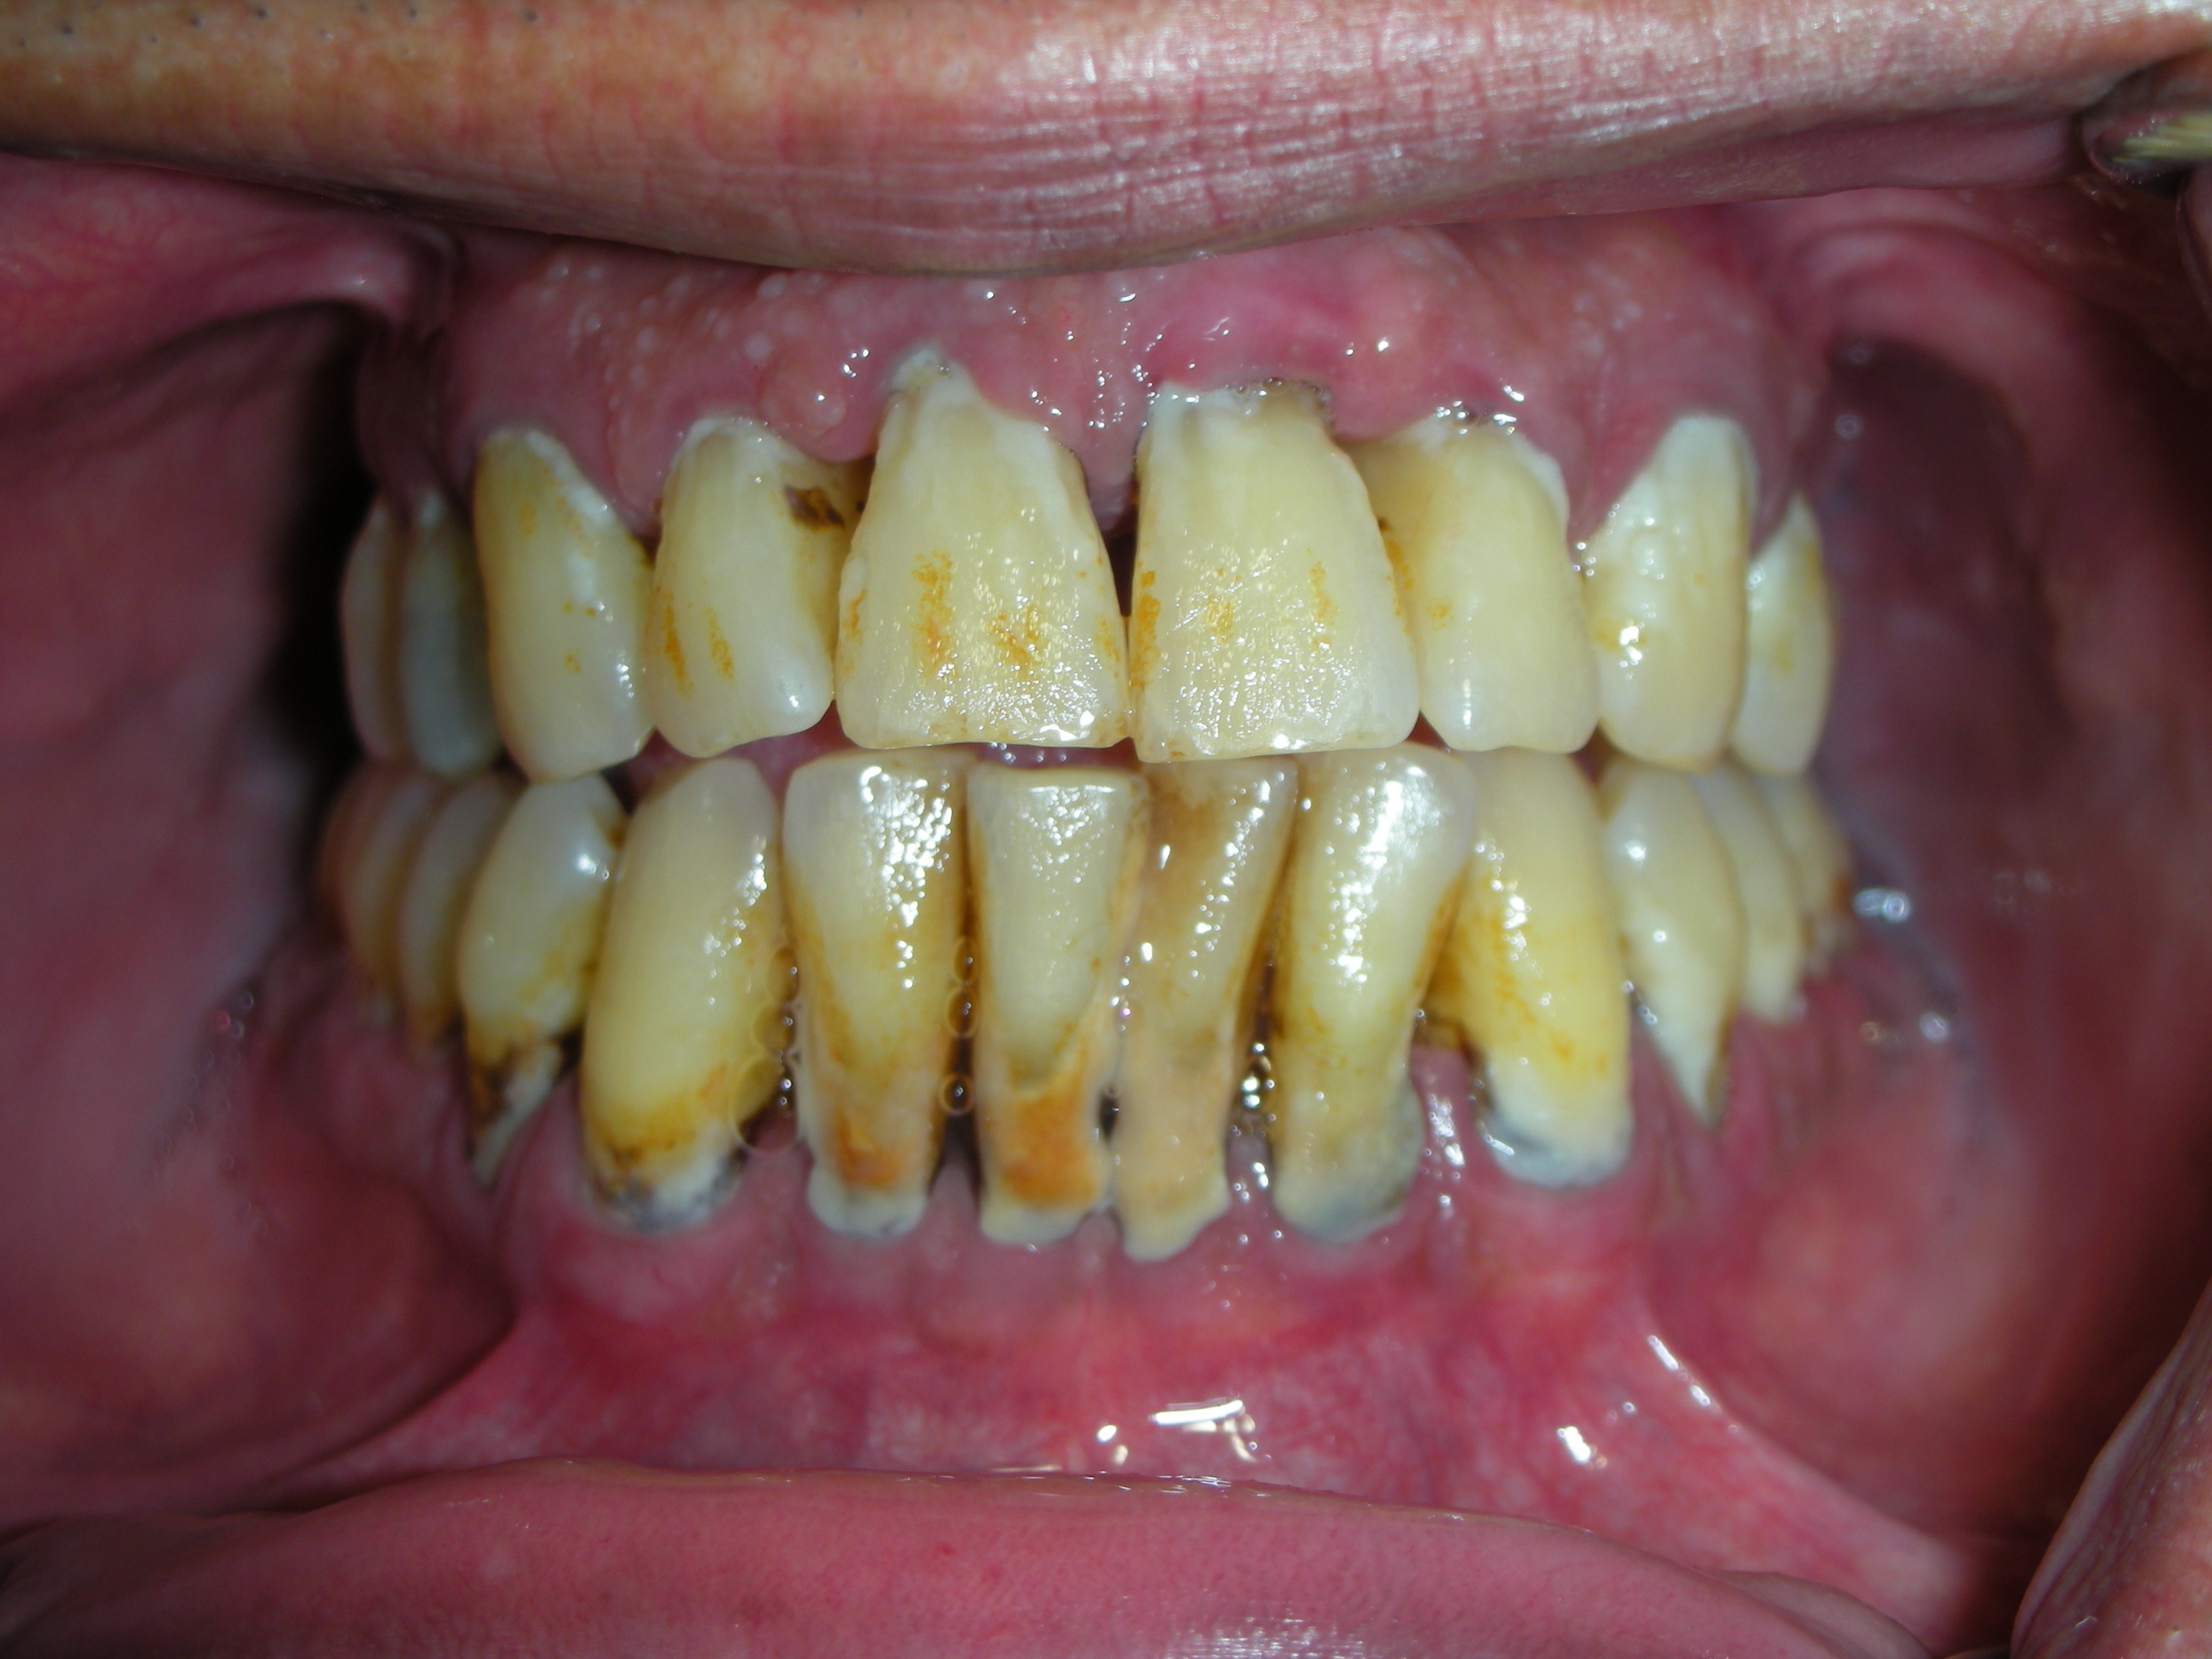 Osceolaregional together with Strabismus Crossed Eyes together with Full as well Types Of Dental Braces For Your Teeth Problems also Organ Donation Donate To Save Lives. on vascular surgery